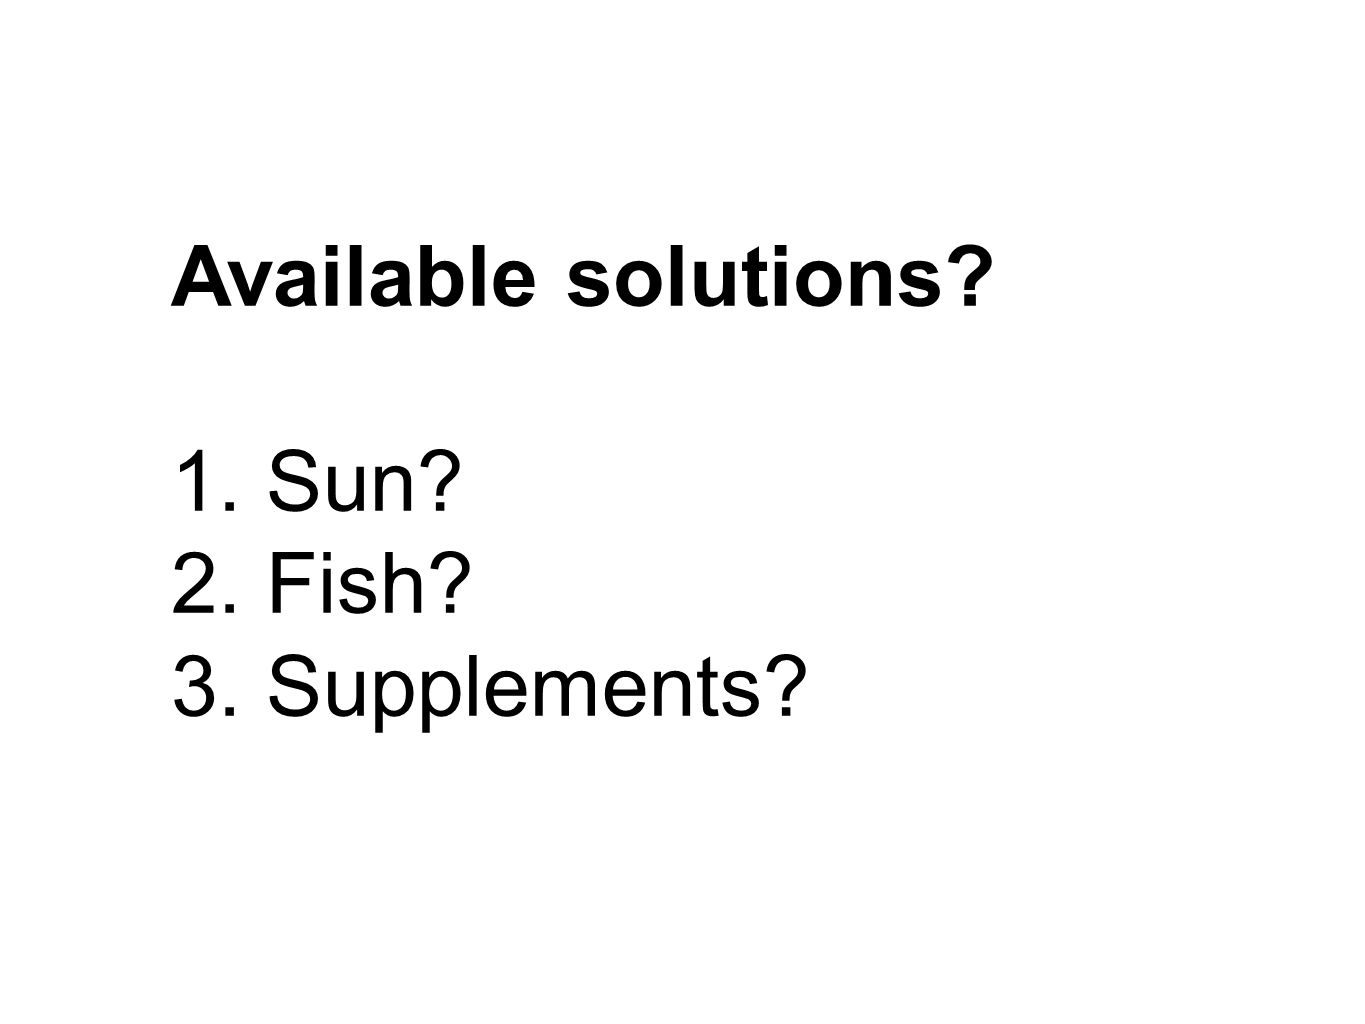 Available solutions 1. Sun 2. Fish 3. Supplements